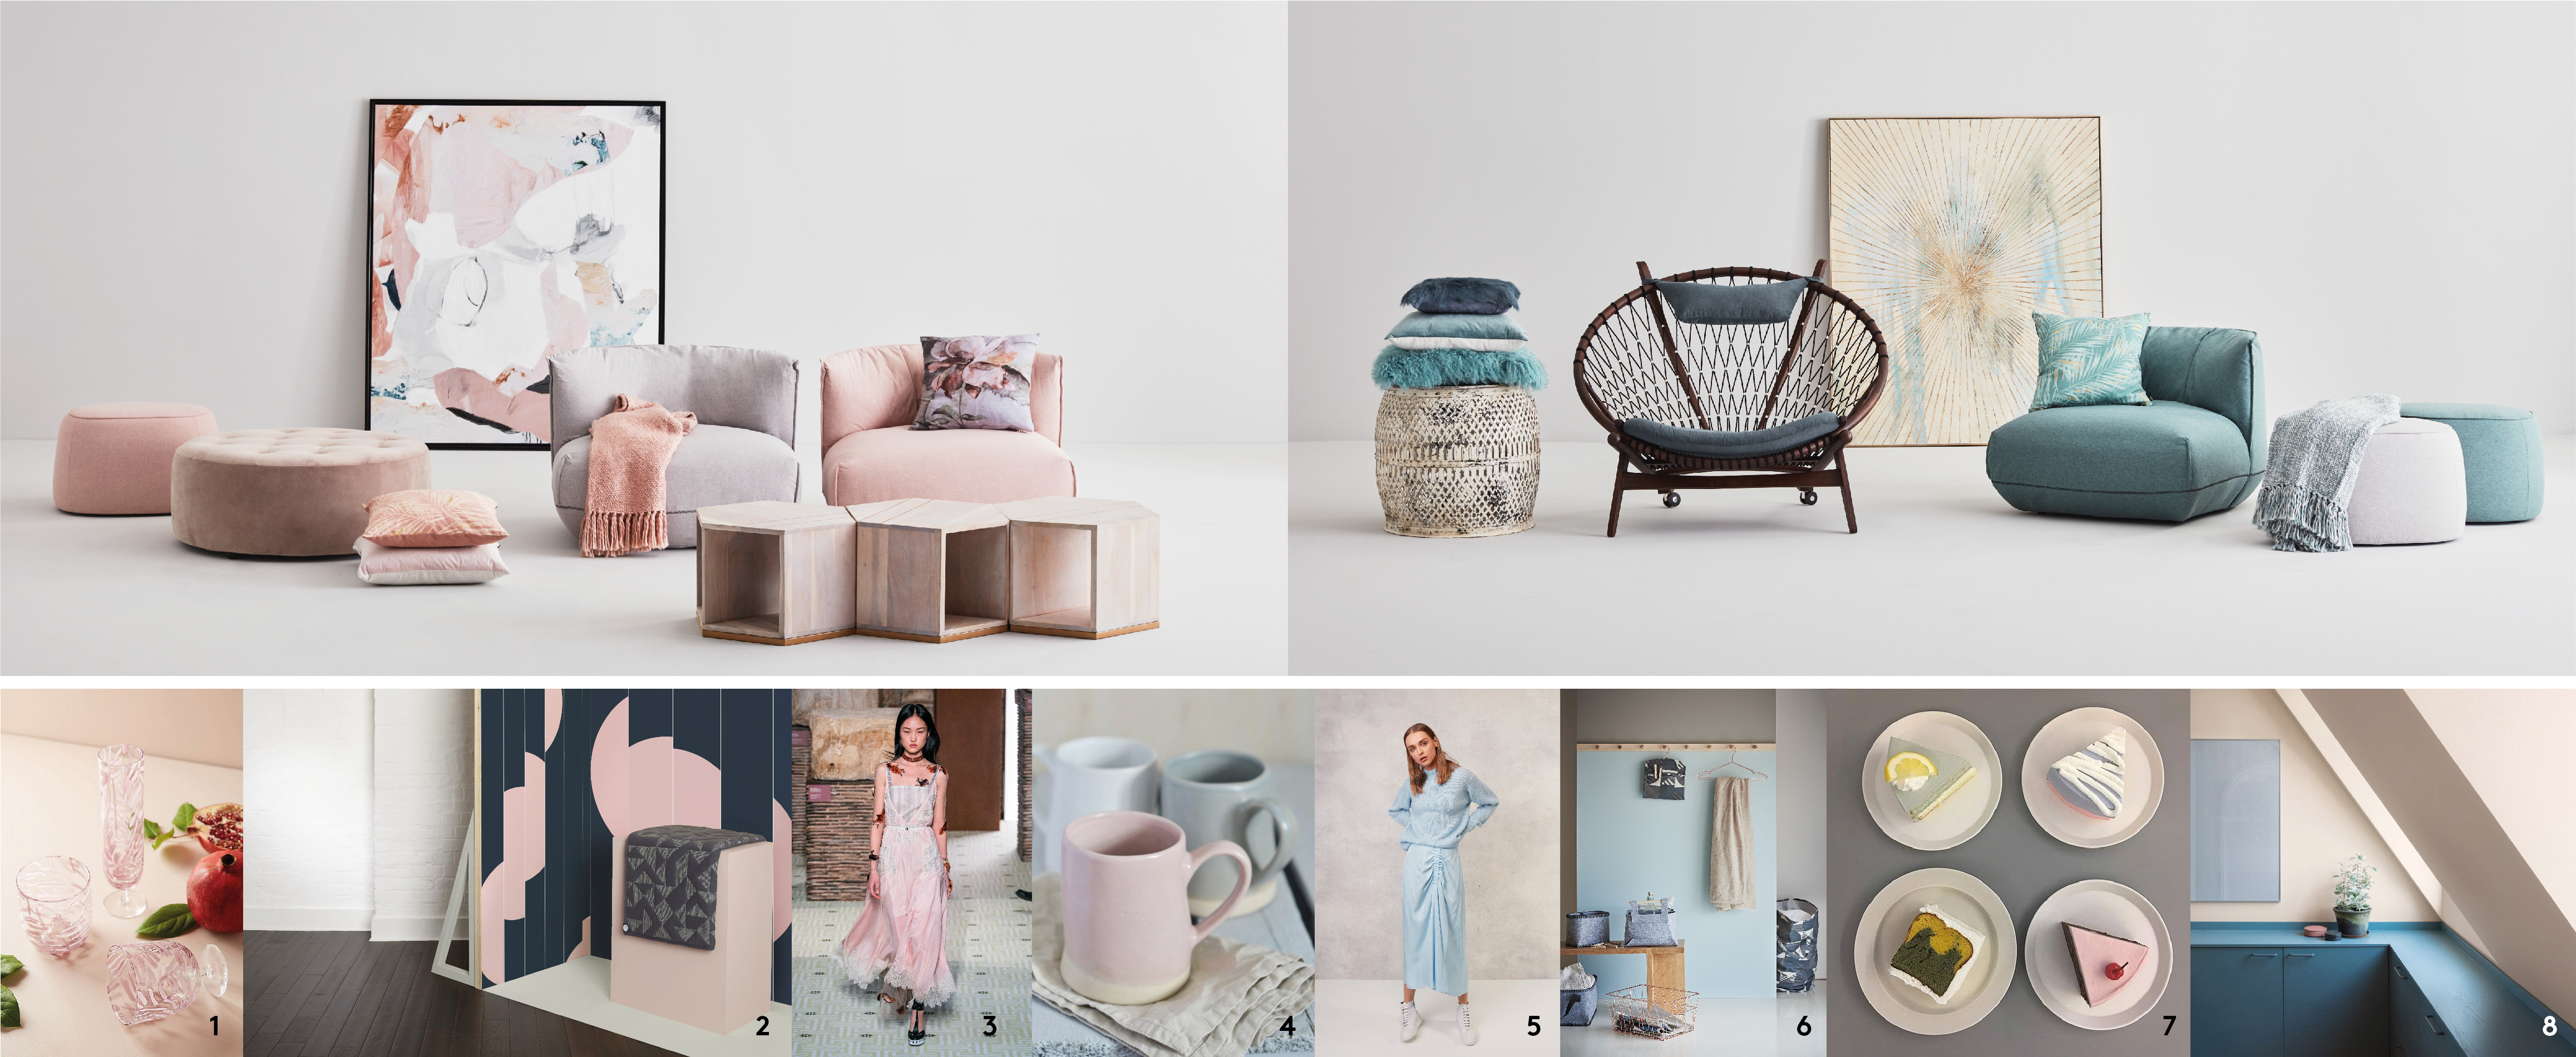 THE HYGGE AND PASTEL TREND